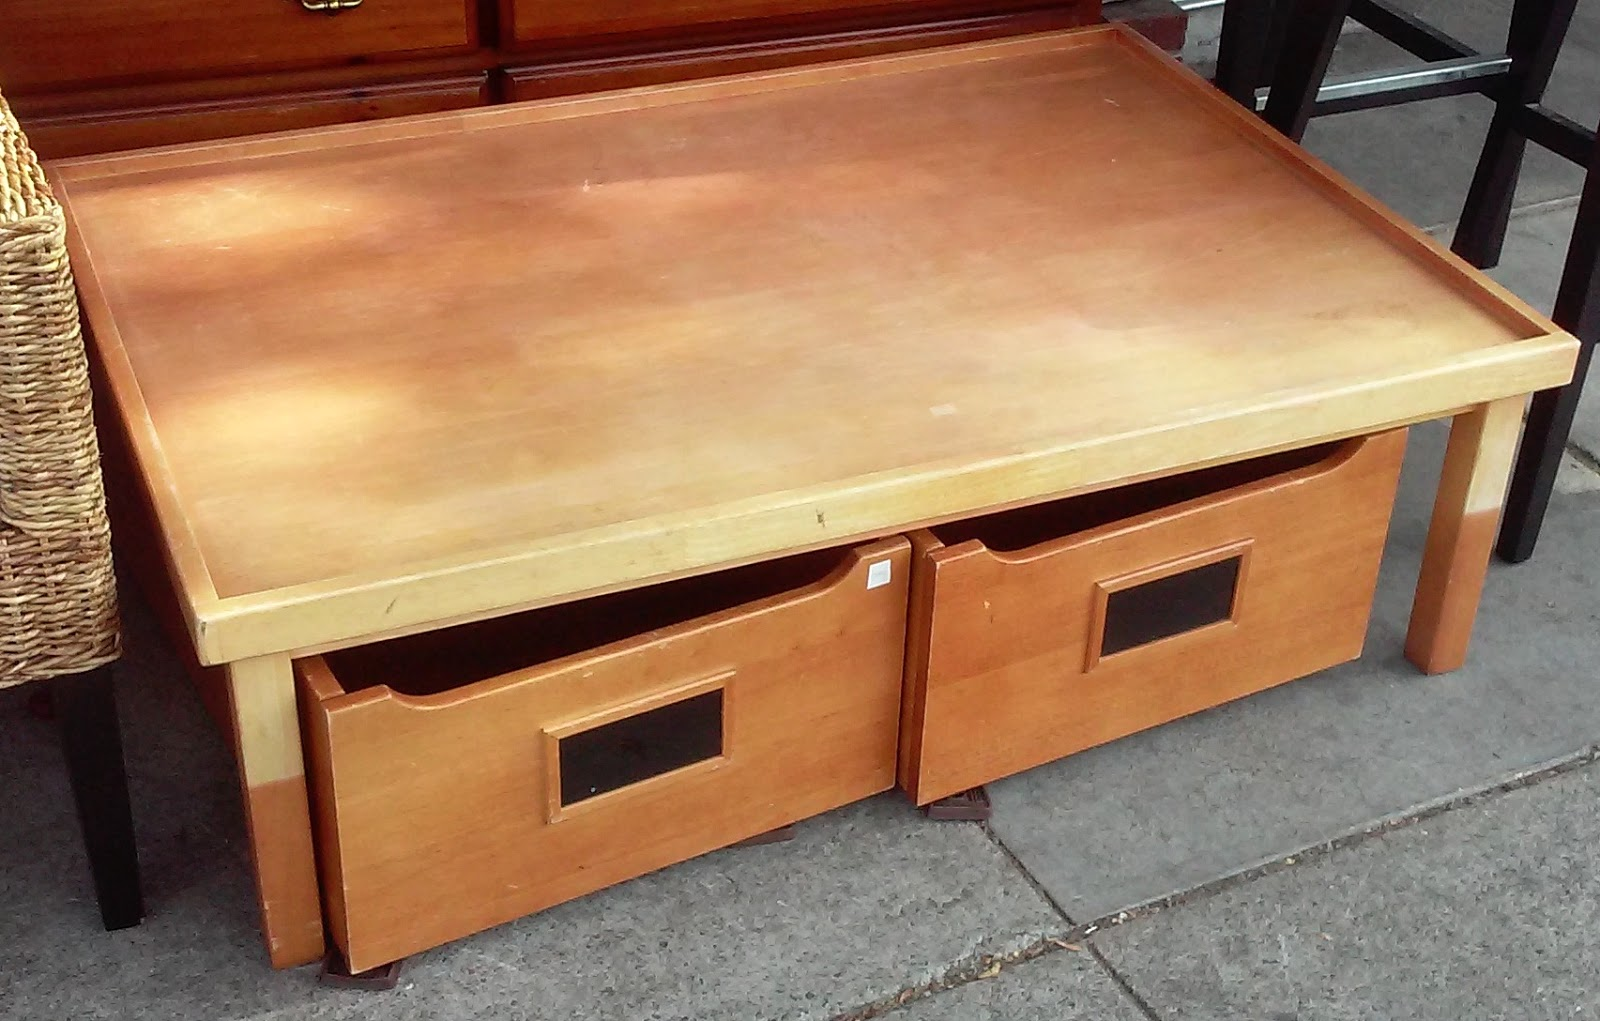 Uhuru Furniture Collectibles Sold Bargain Buy 7563 Coffee Table With Rolling Drawer